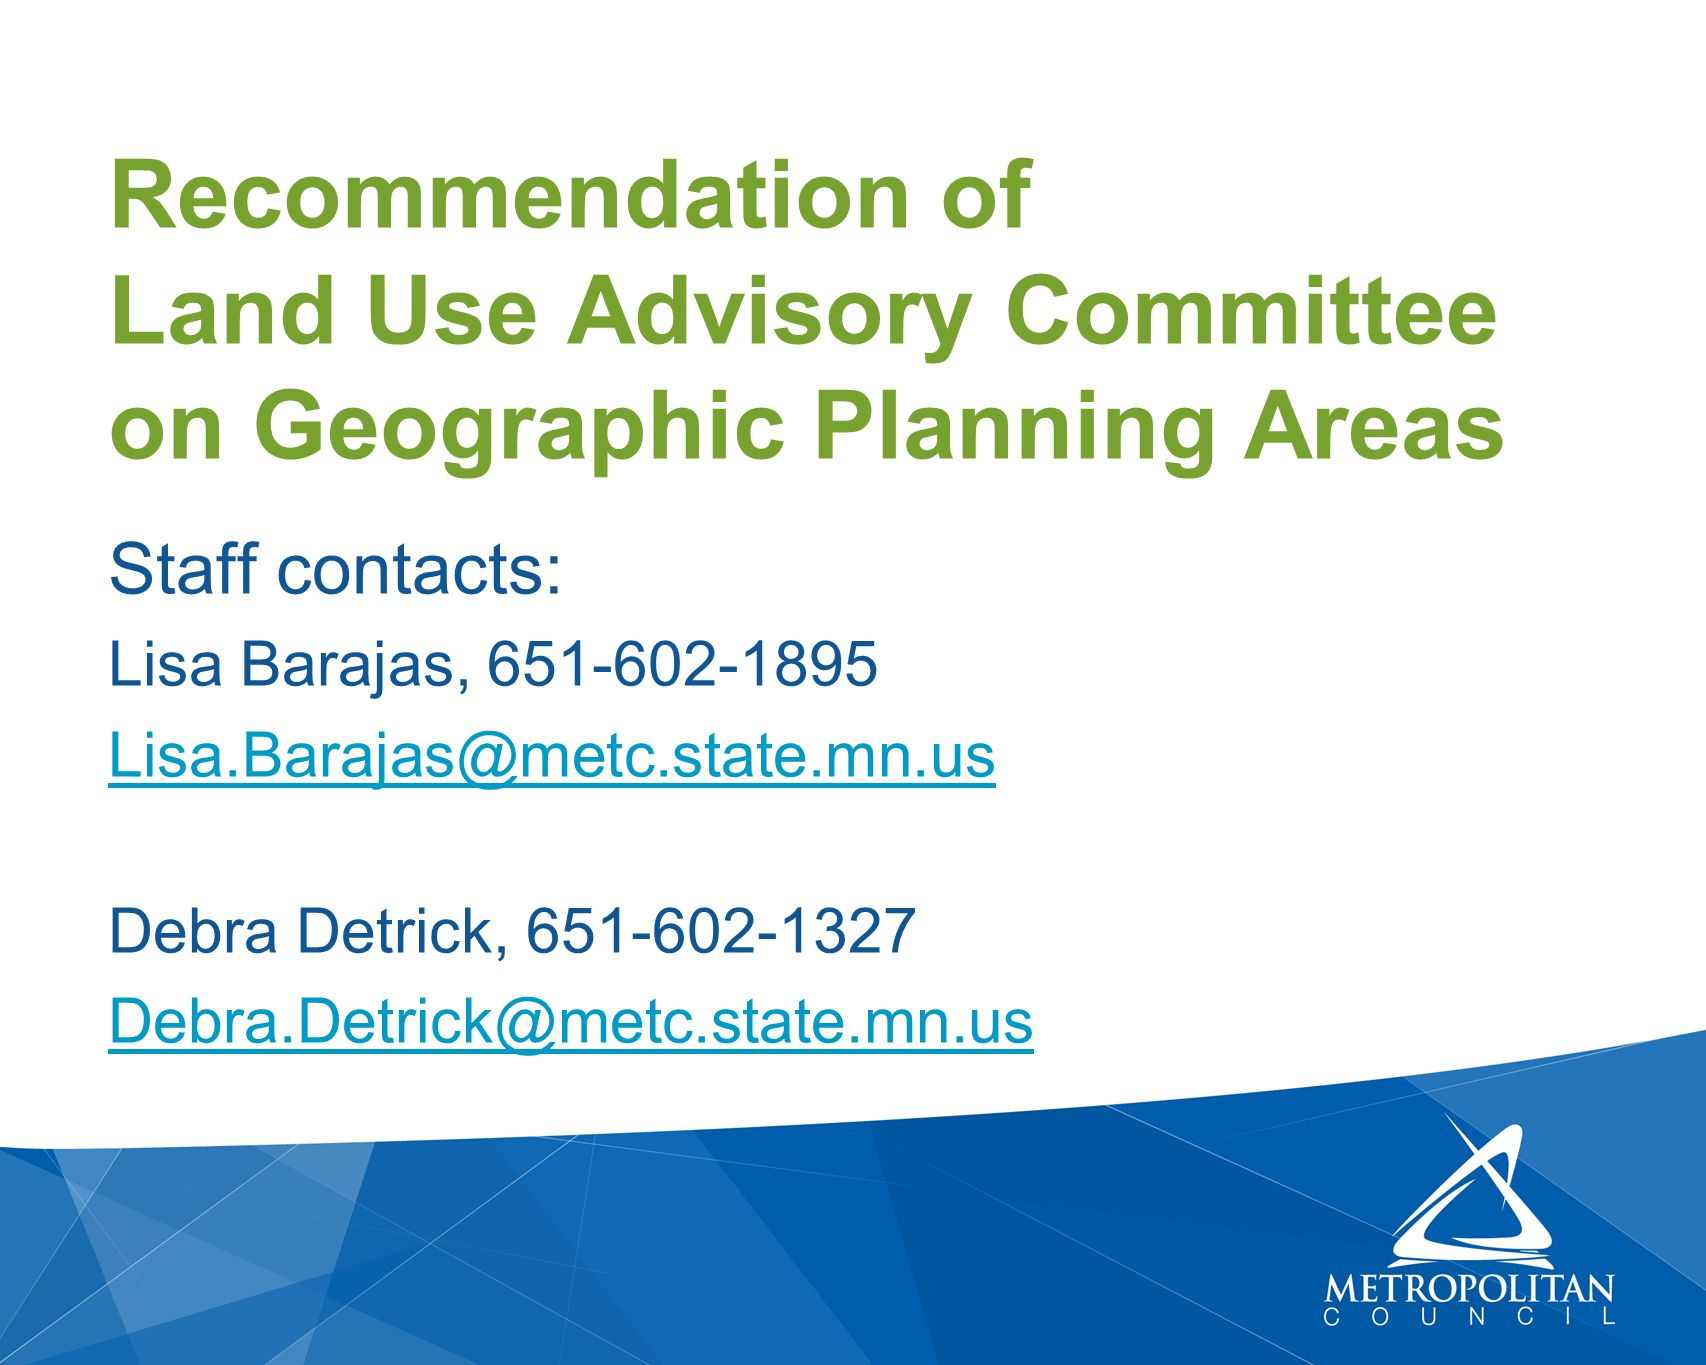 Staff contacts: Lisa Barajas, 651-602-1895 Lisa.Barajas@metc.state.mn.us Debra Detrick, 651-602-1327 Debra.Detrick@metc.state.mn.us Recommendation of Land Use Advisory Committee on Geographic Planning Areas